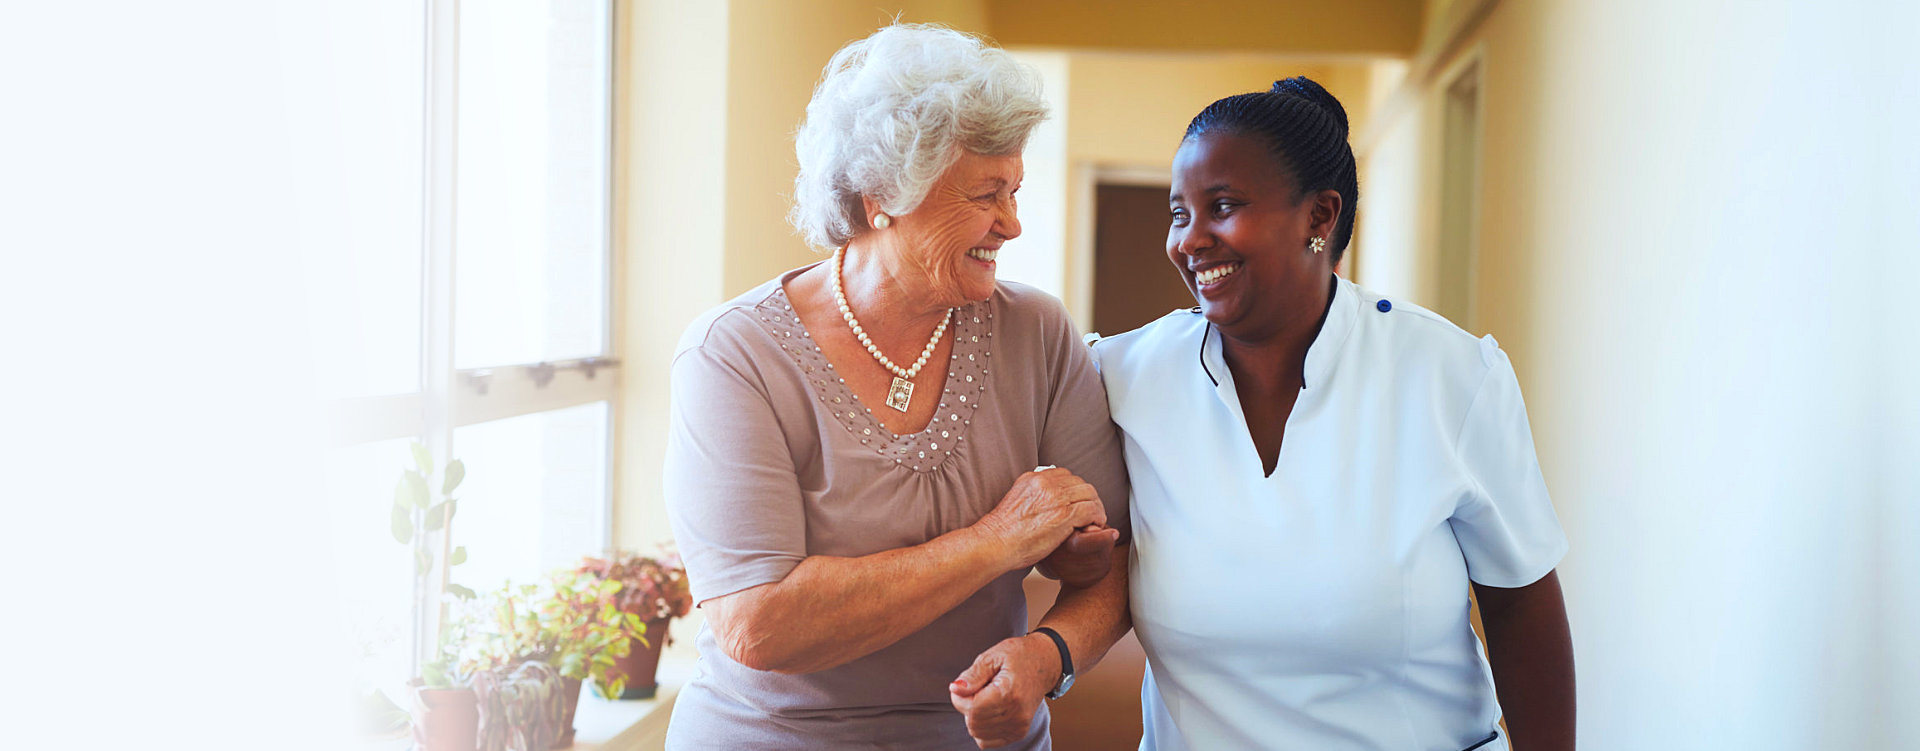 caretaker and patient looking at each other and smiling